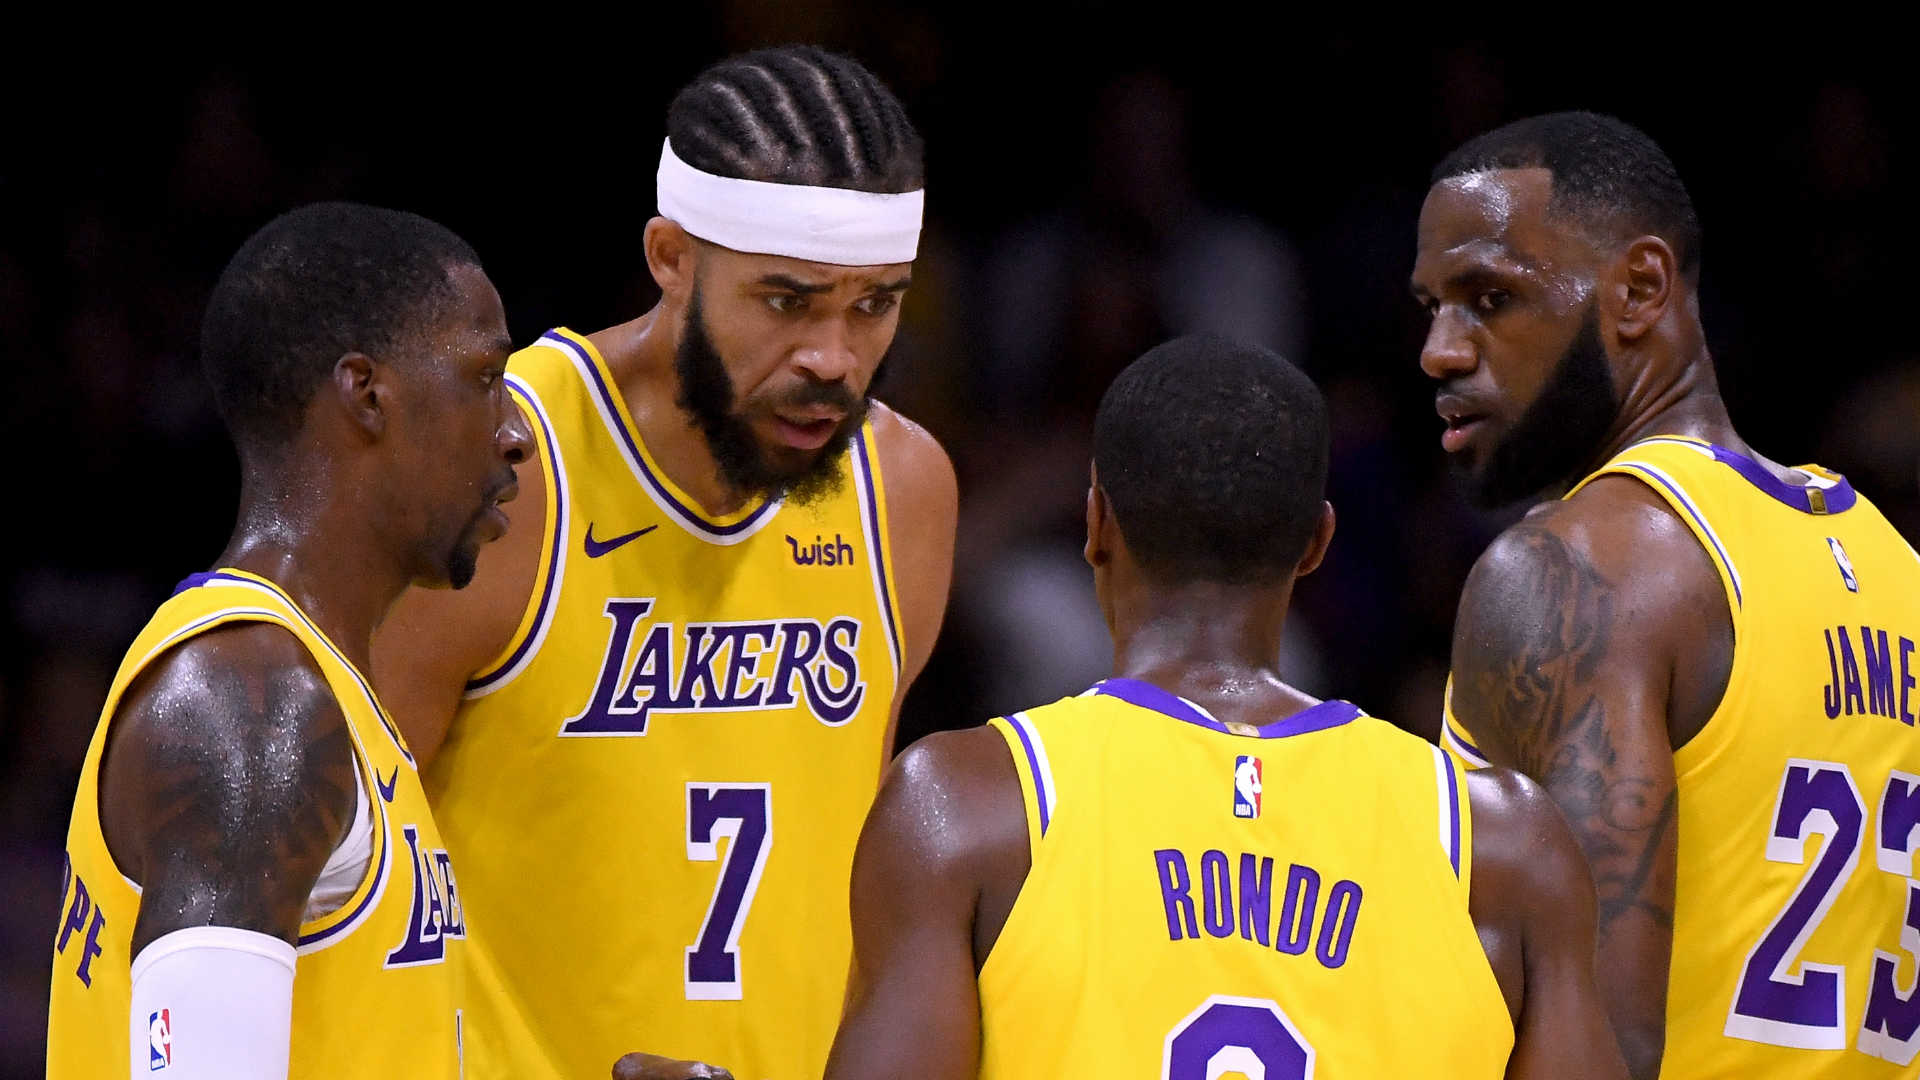 LeBron James' Lakers debut offers tantalizing preview despite loss